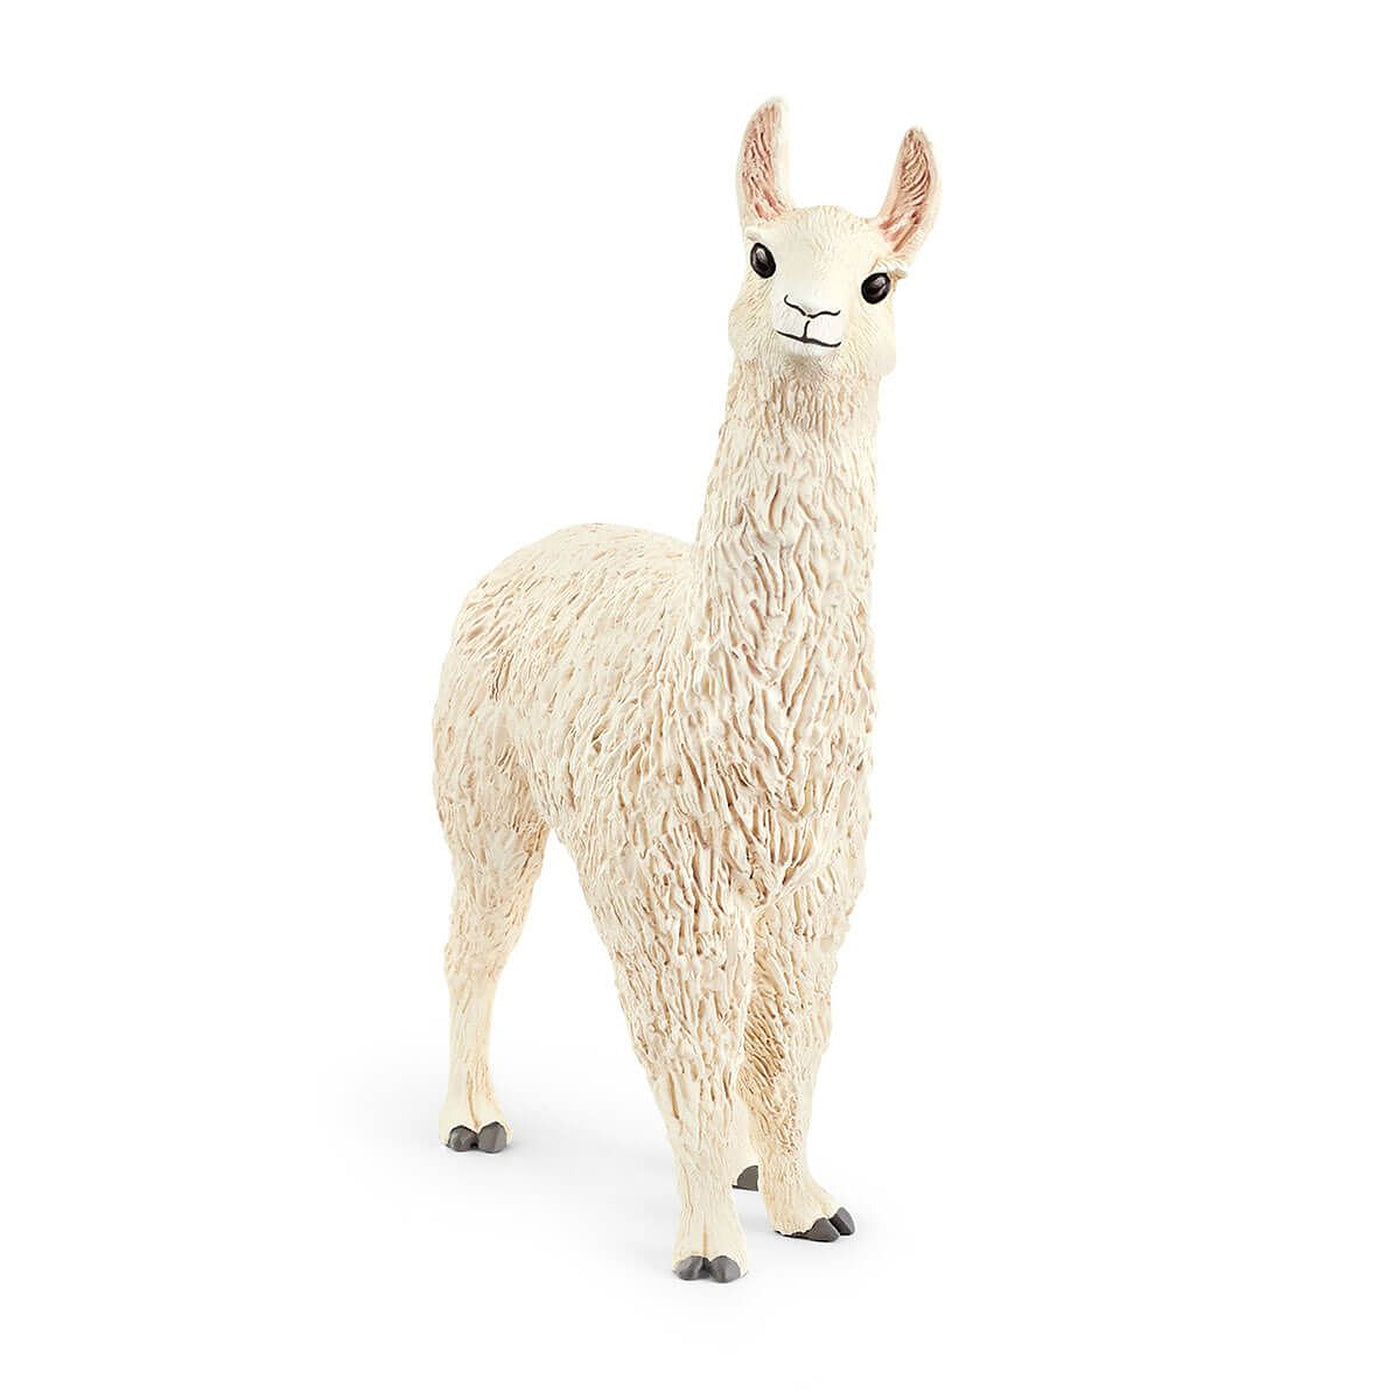 Schleich Farm World Llama Toy Figurine